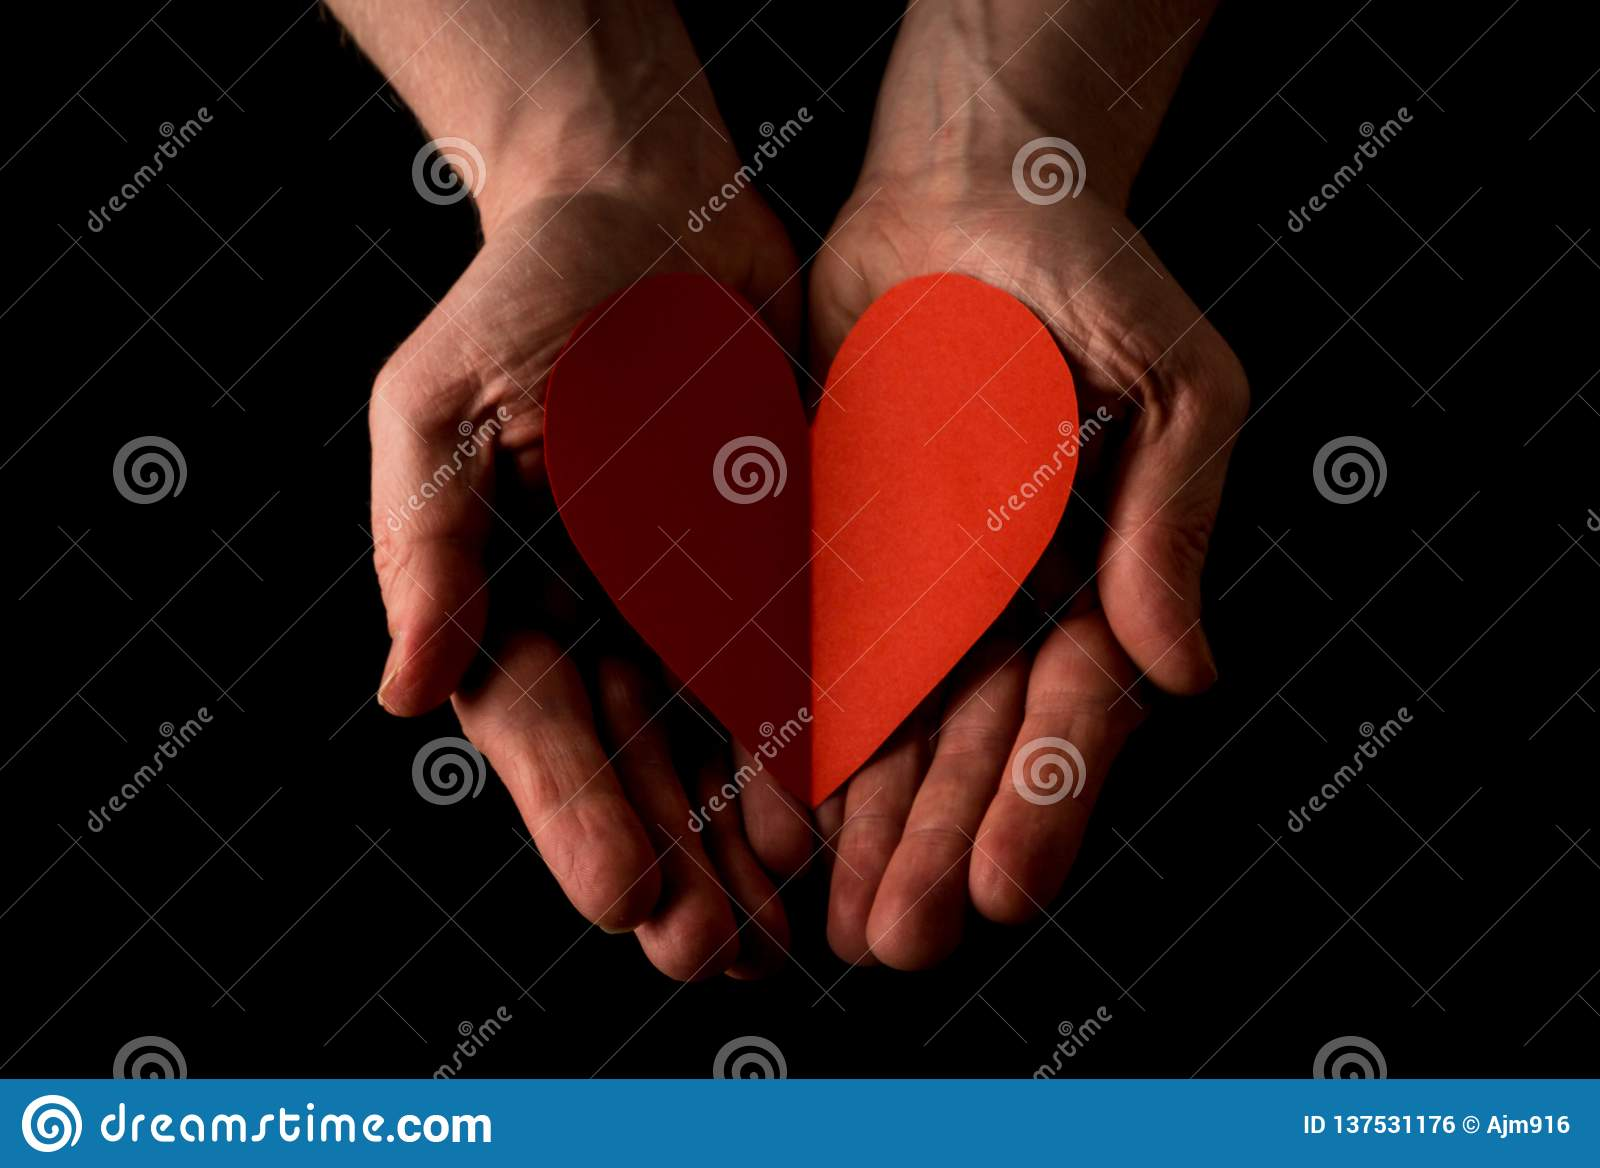 Helping hand concept, Man`s hands palms up holding a Red Heart, giving love, reaching out